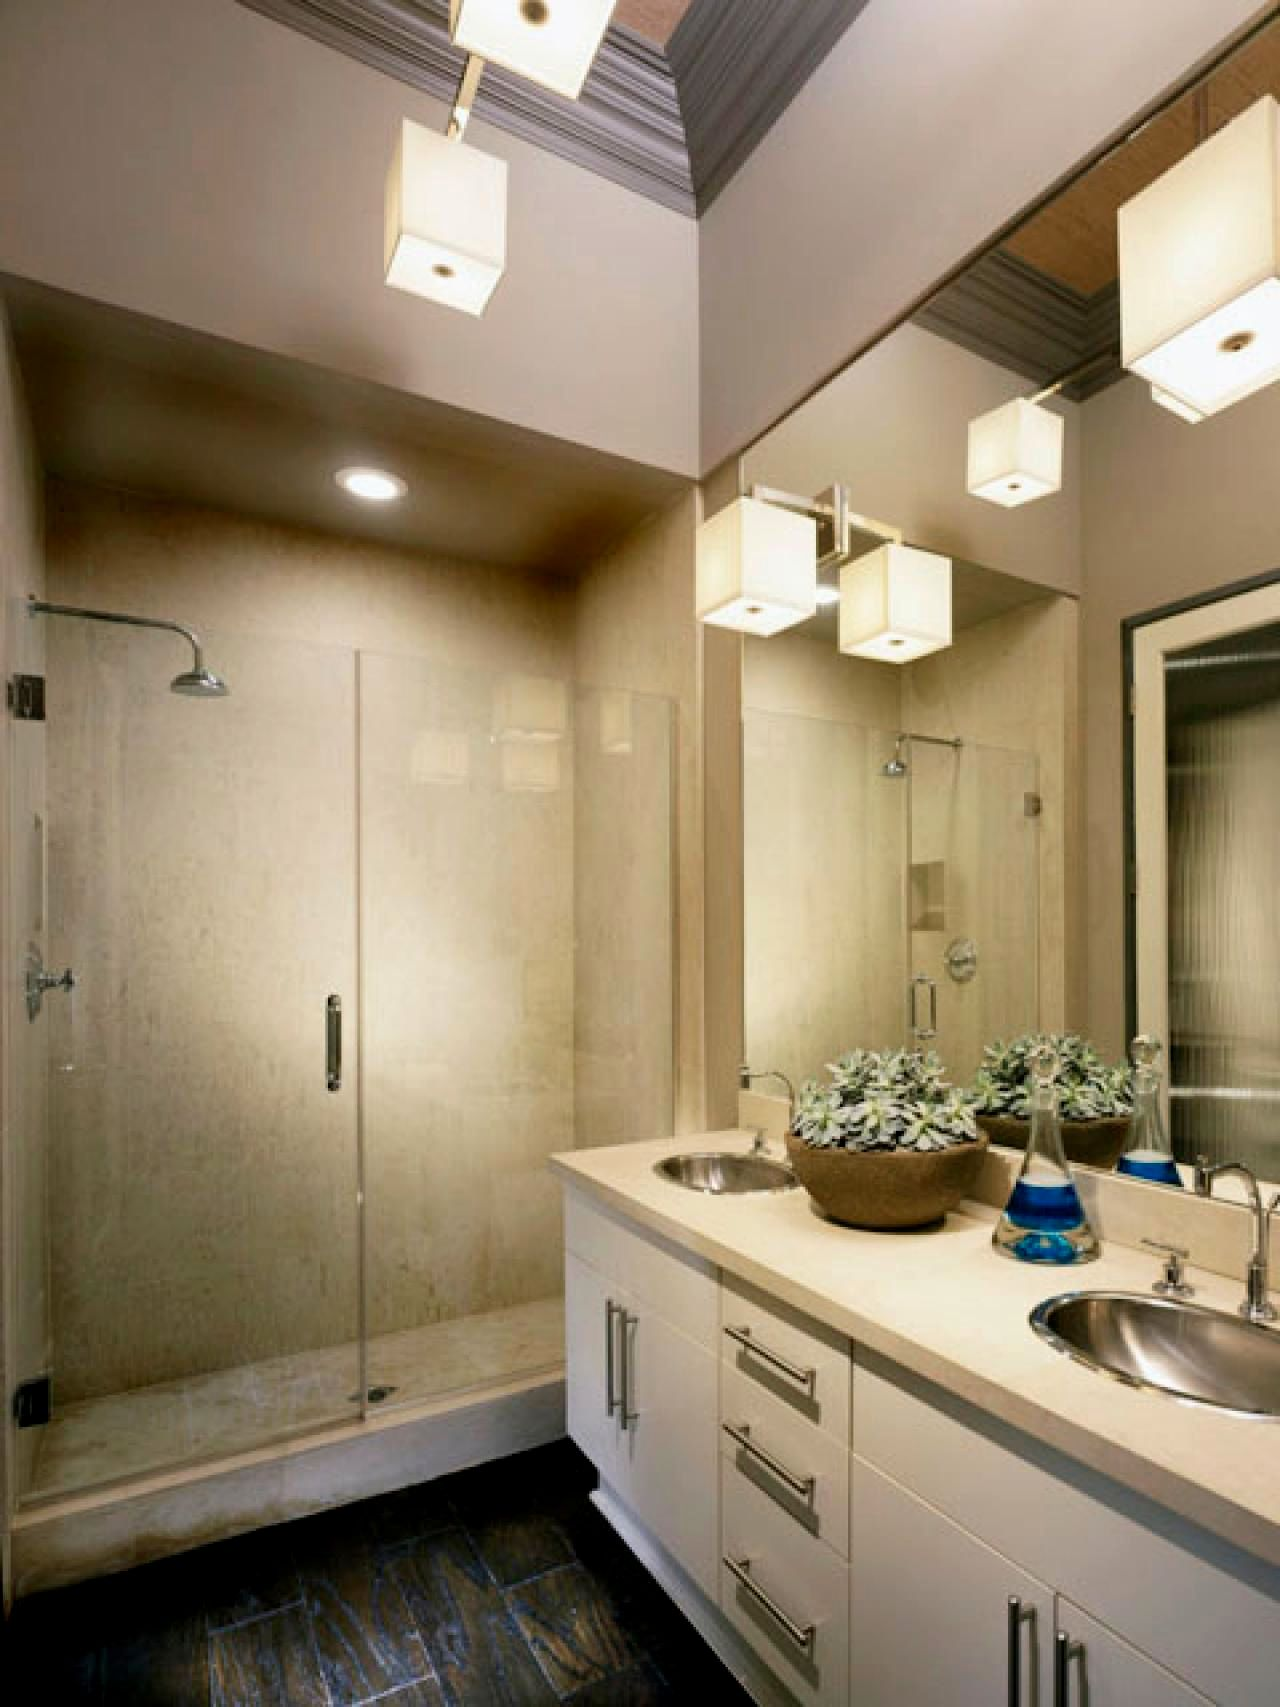 luxury bathroom shelving ideas picture-Lovely Bathroom Shelving Ideas Collection